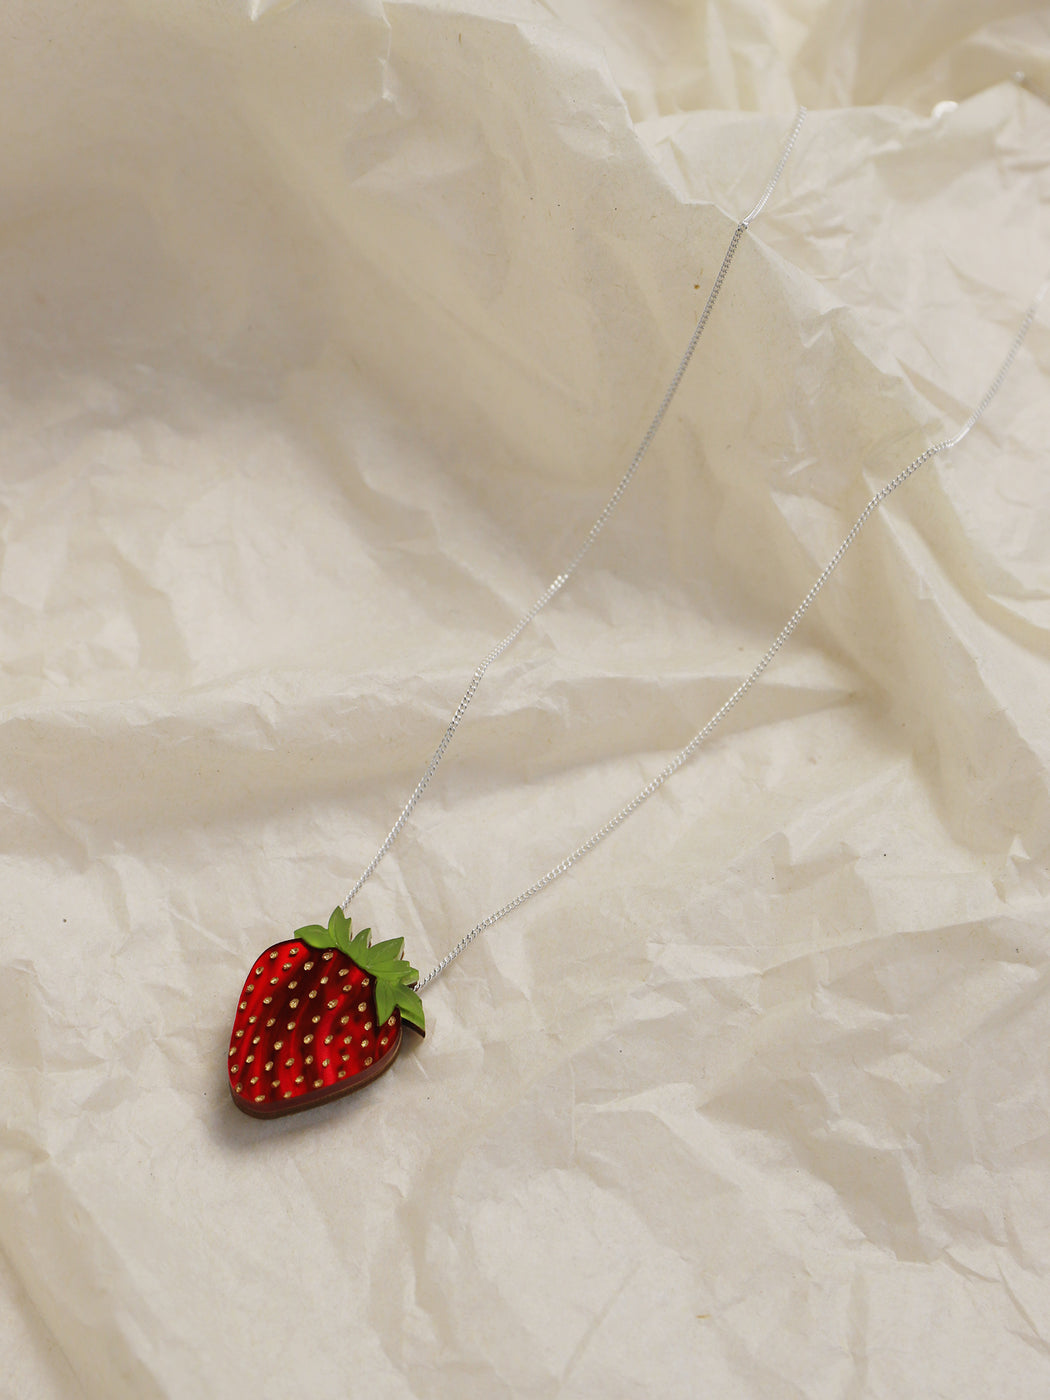 Strawberry Necklace in Silver. Statement jewellery, handmade in the U.K. by Wolf & Moon.